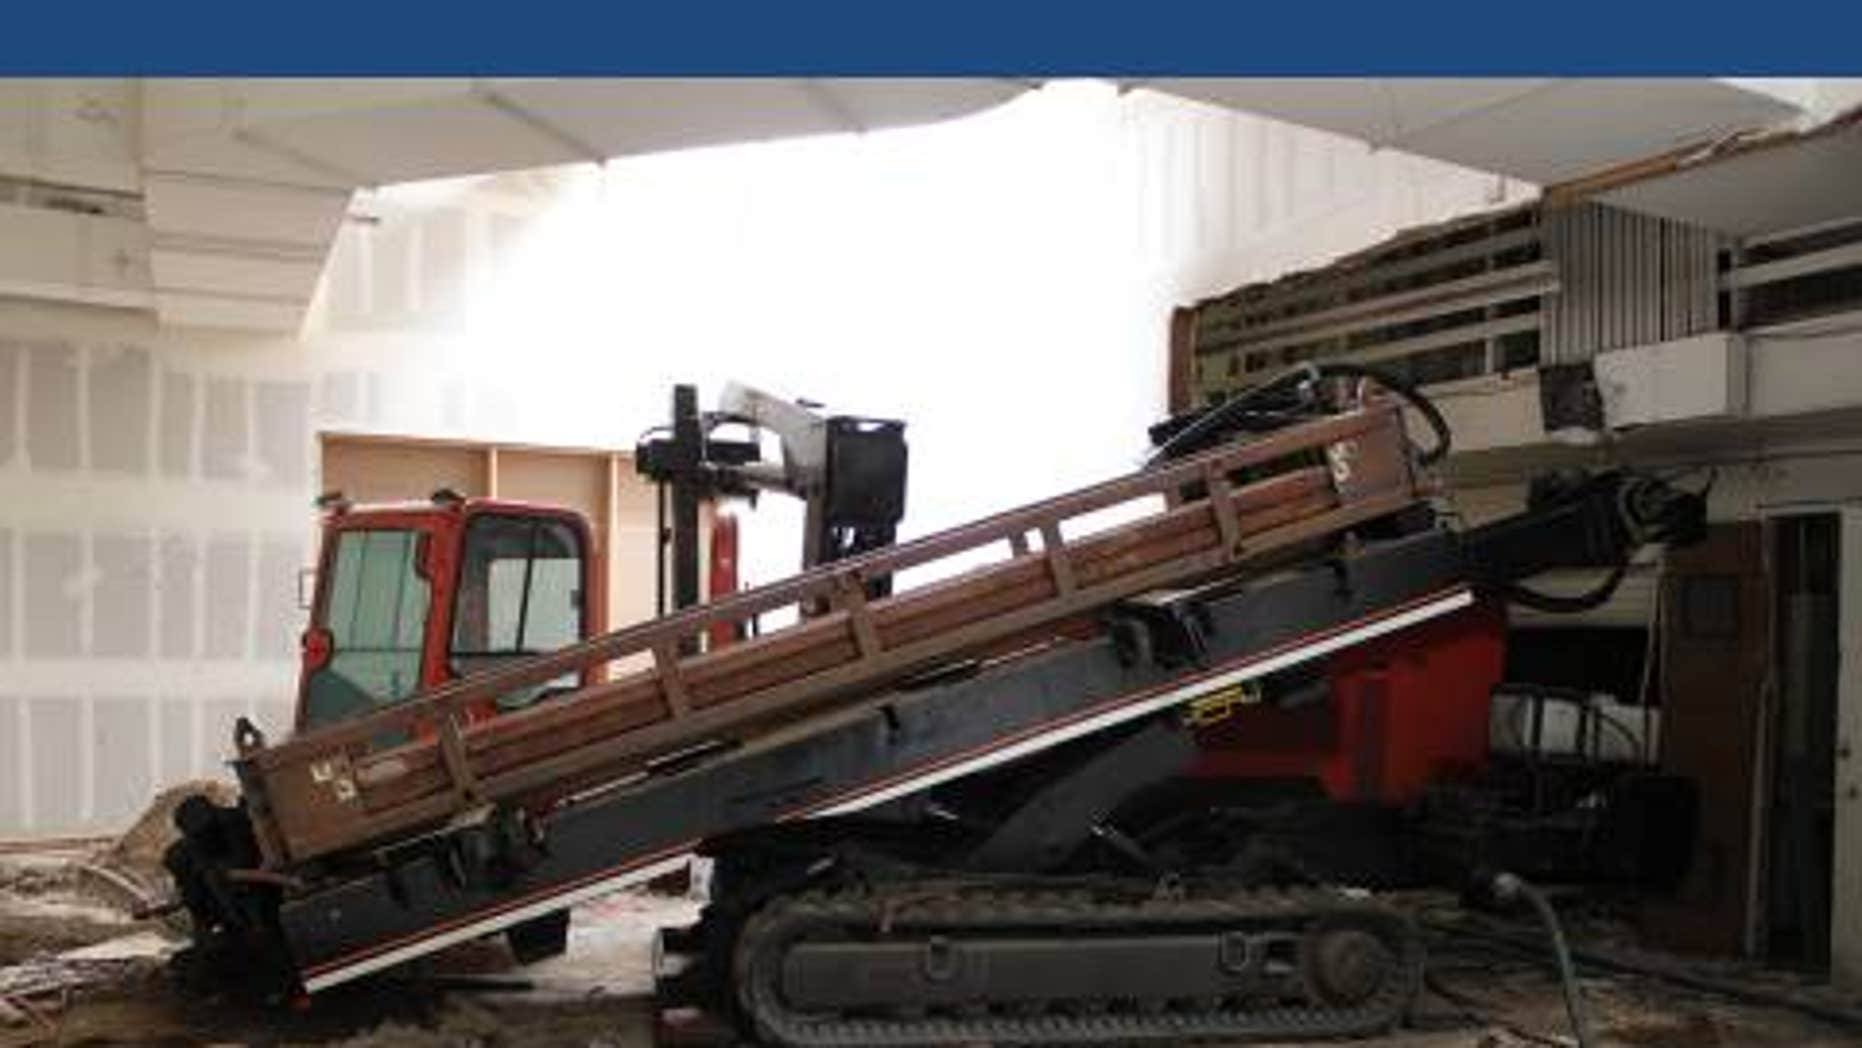 A horizontal-drilling machine was used to start construction of a drug-smuggling tunnel from a Calexico warehouse across the U.S.-Mexico border.